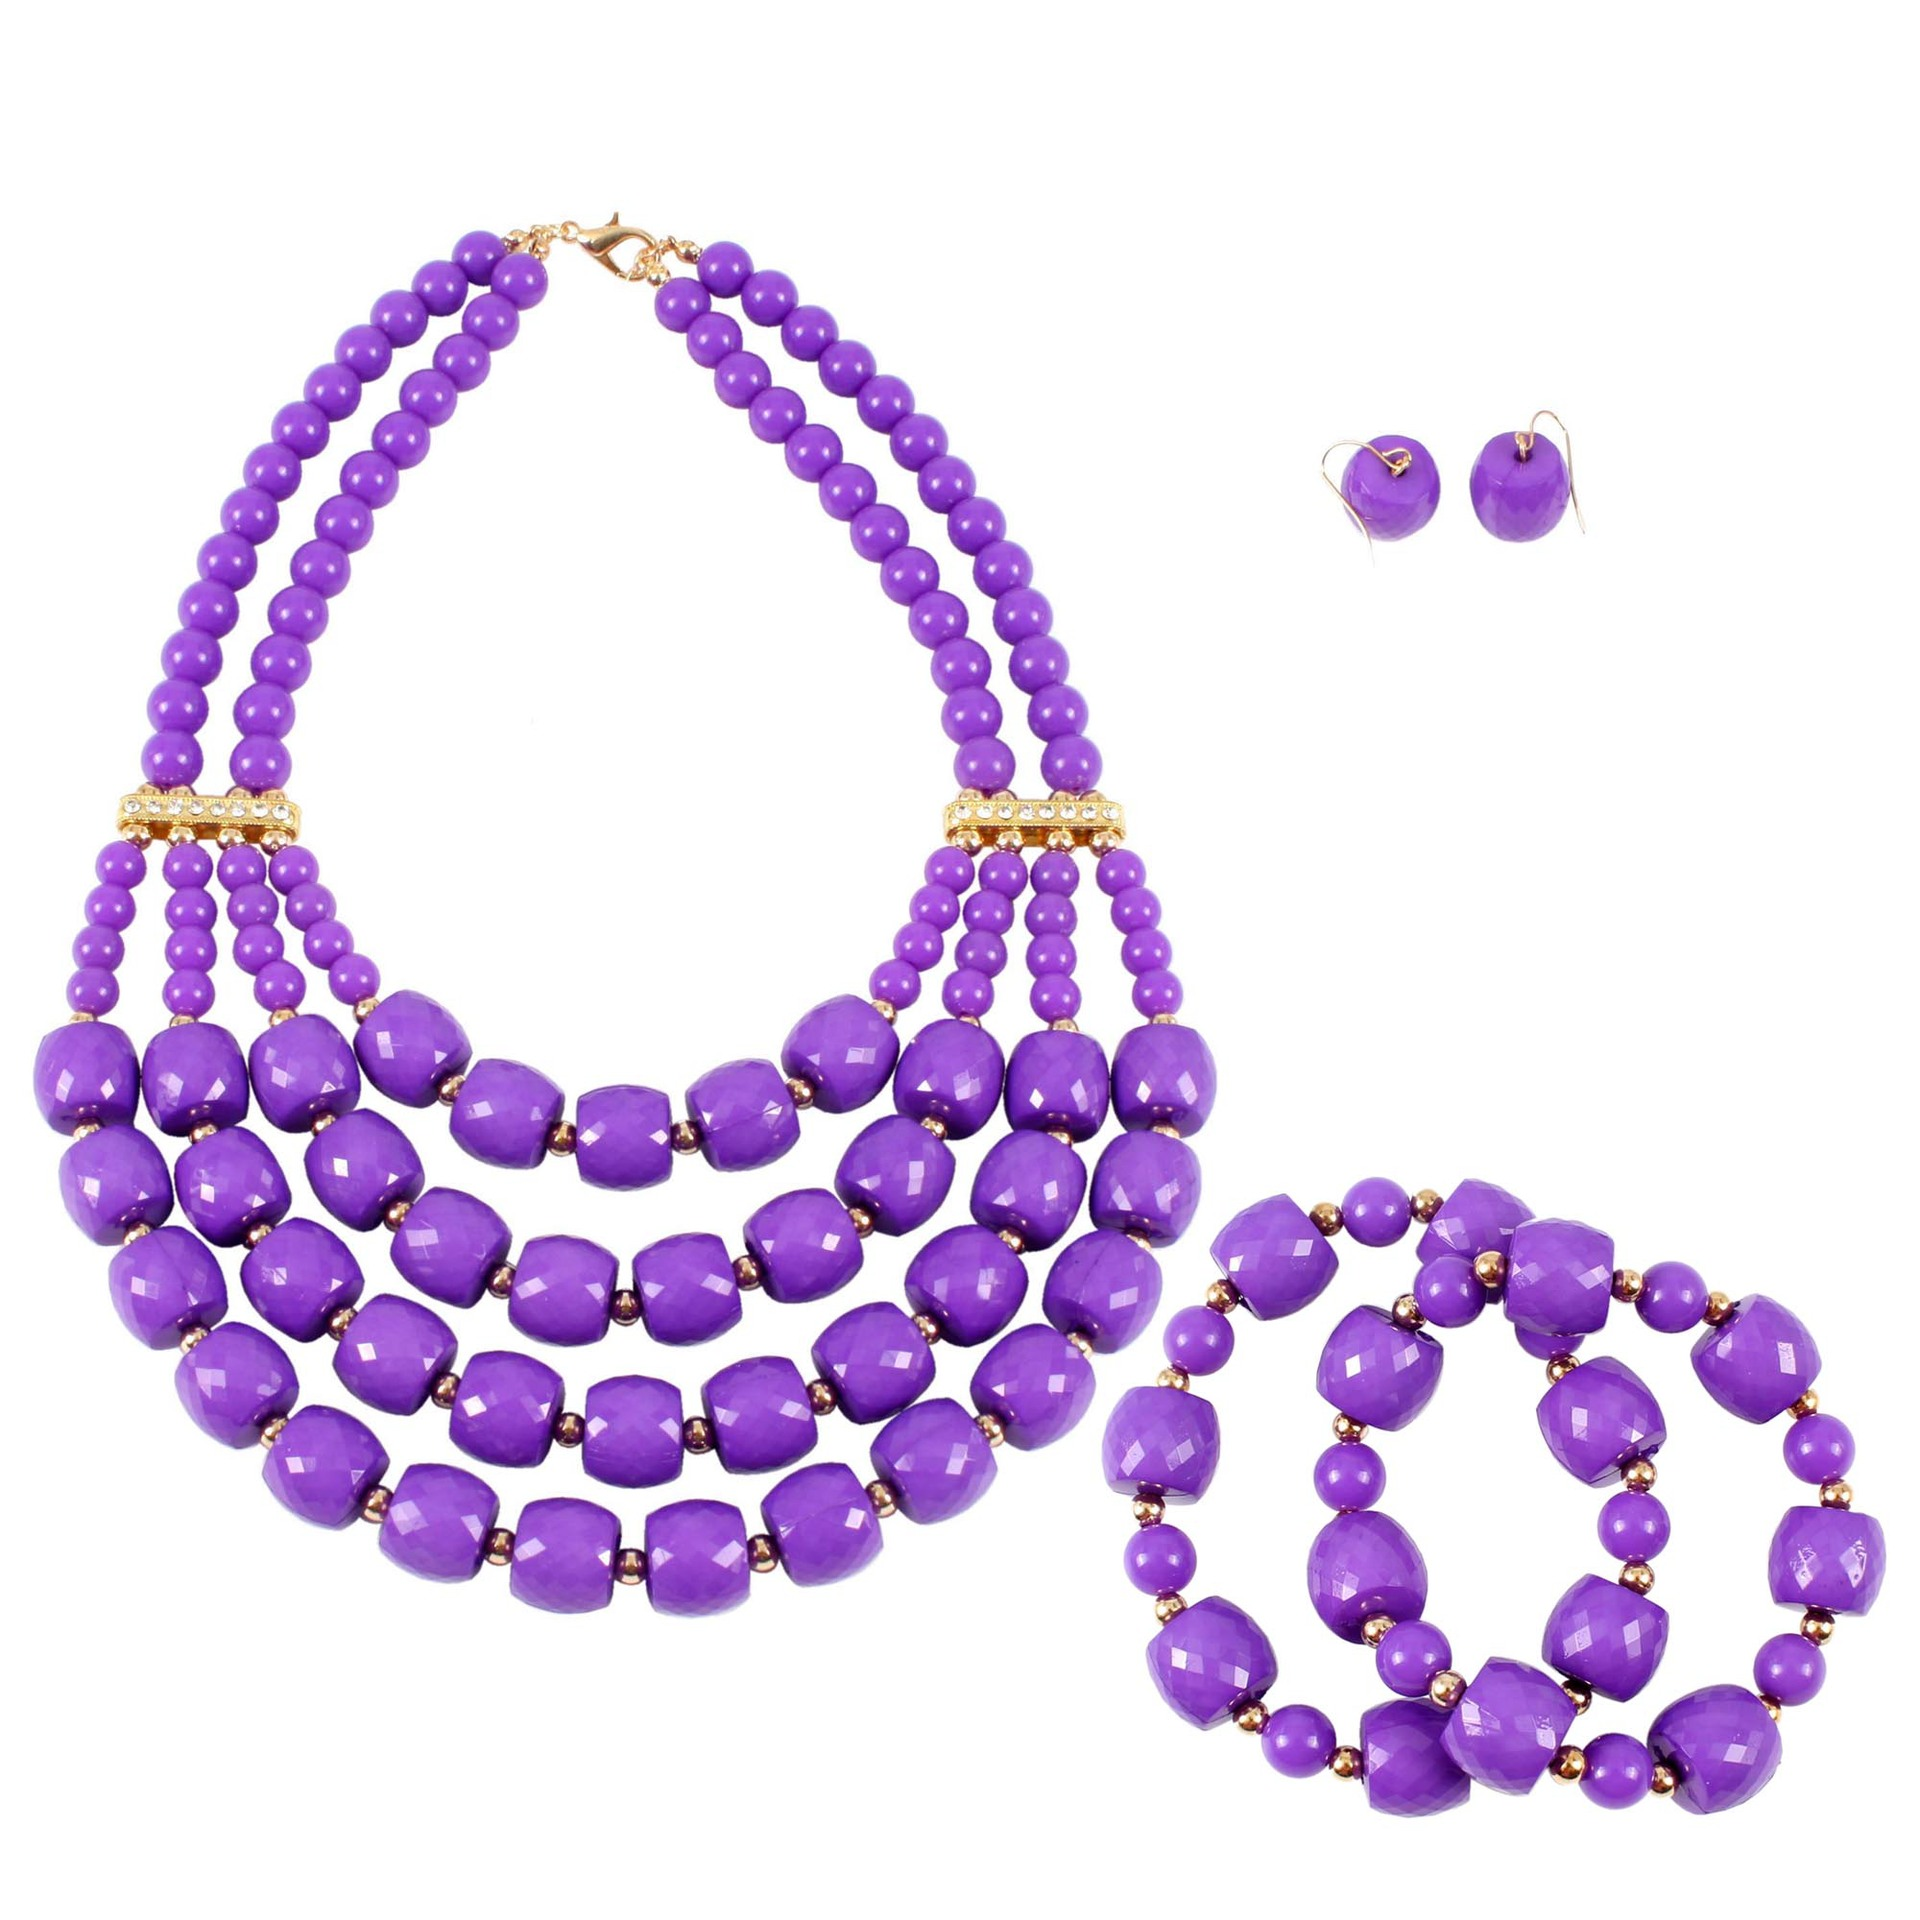 Wholesale 5 Set Bohemian Layered Geometric Strand 3 Pcs Jewelry Sets African Beads Bridal Crystal Necklace Set Bracelet Earrings bohemian beads necklace and earrings